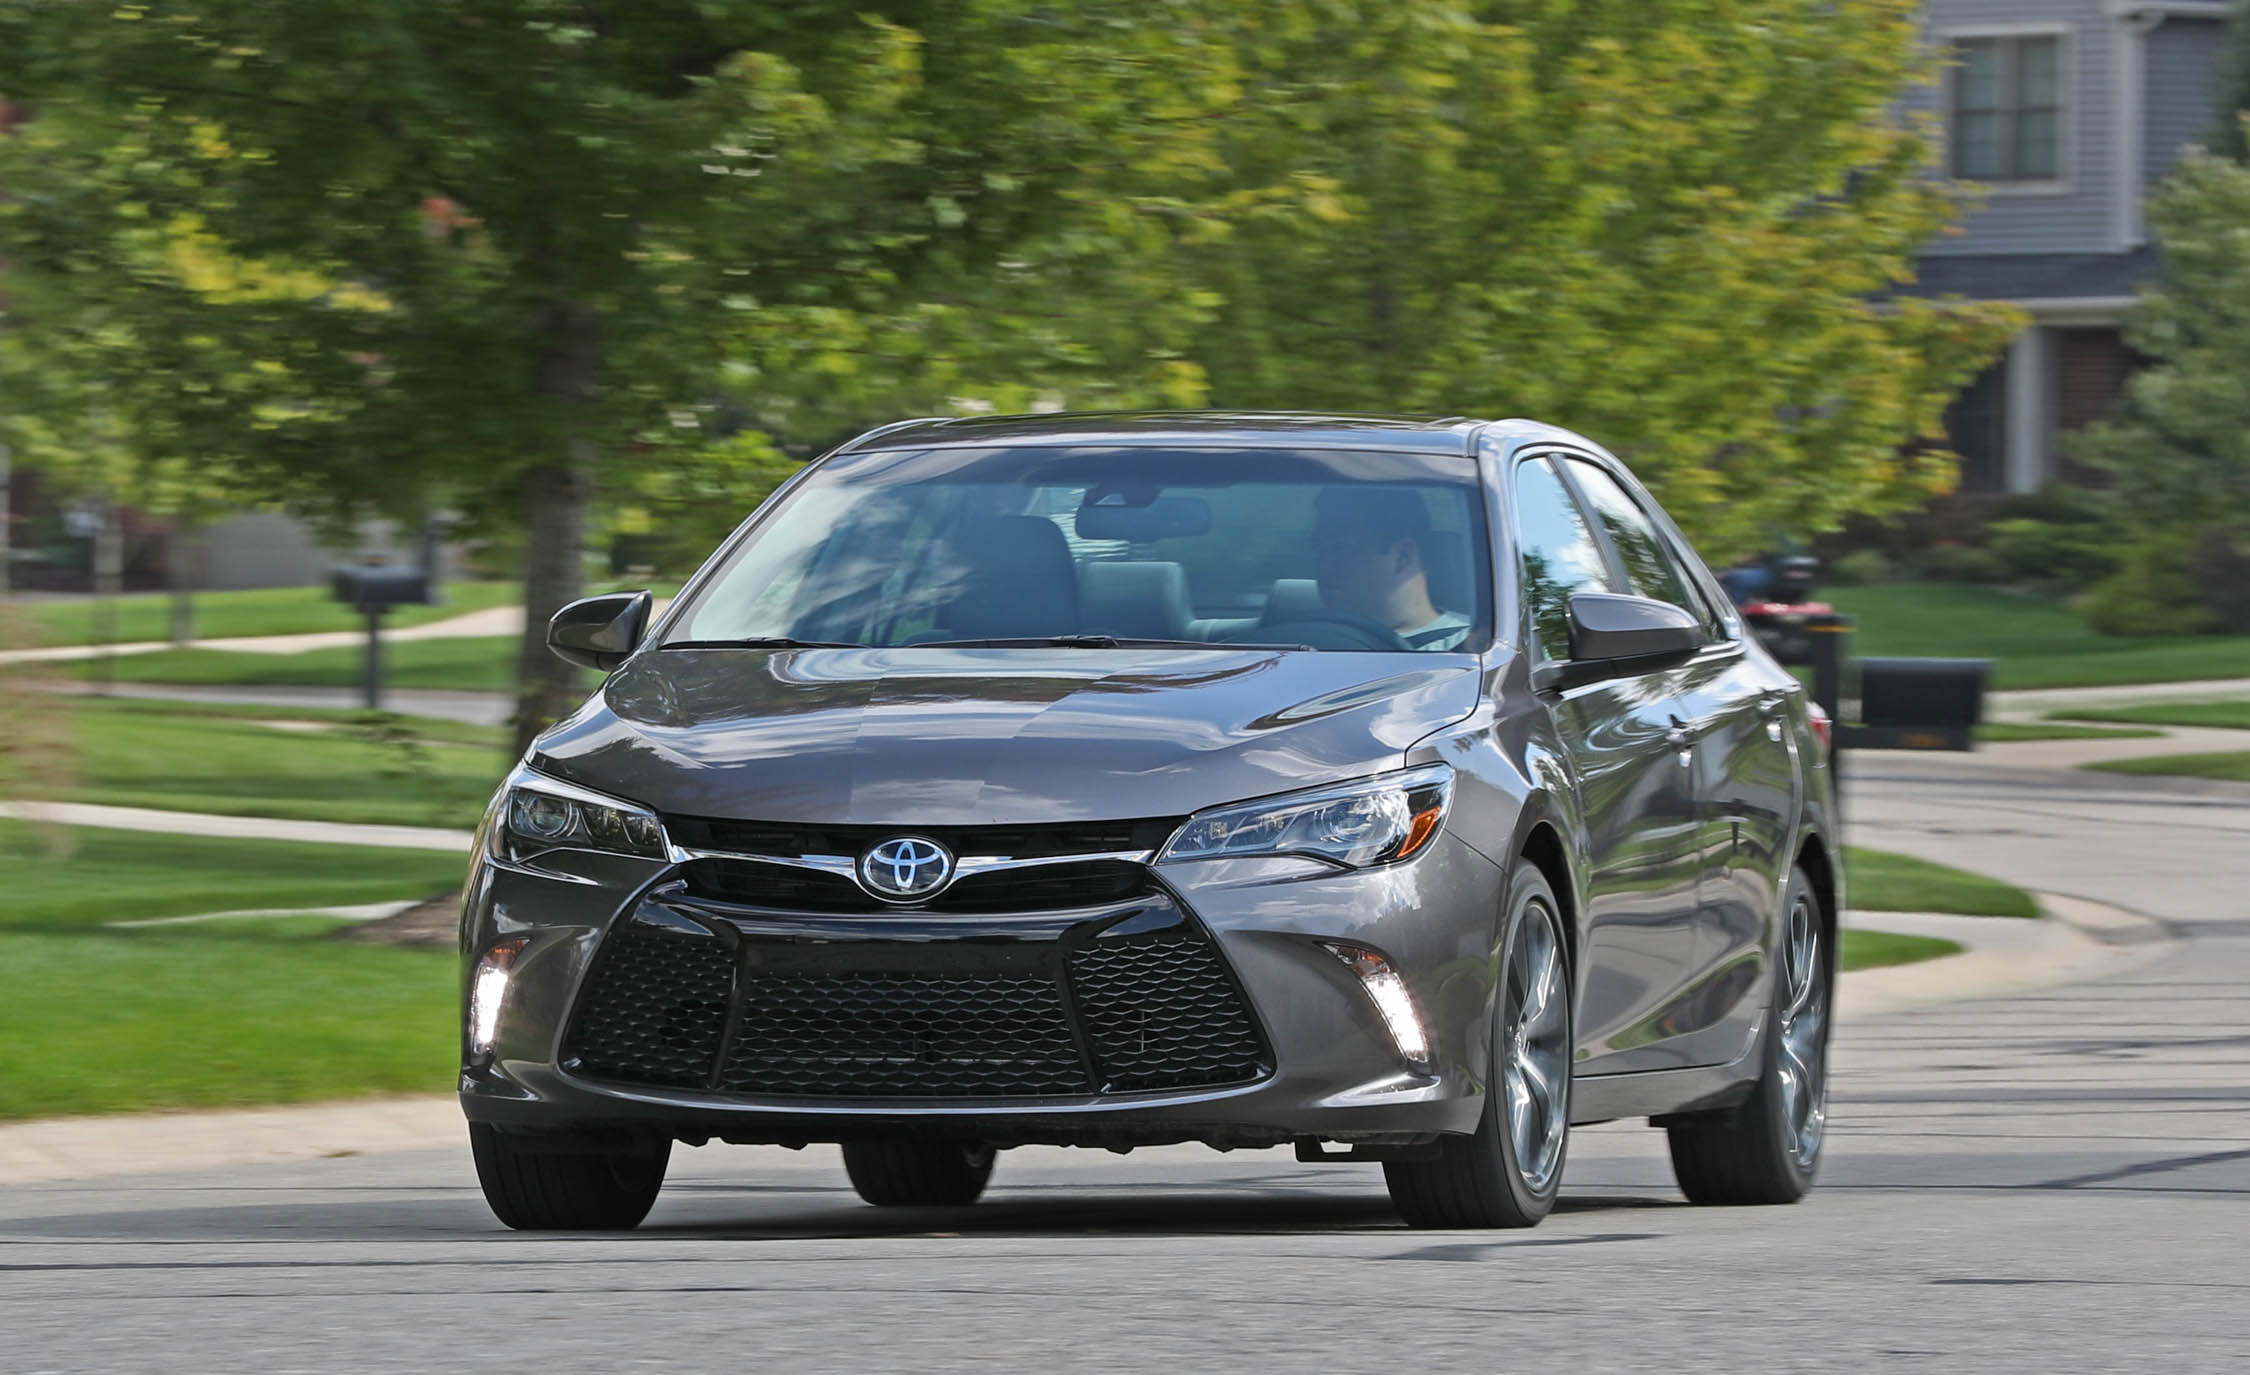 2017 Toyota Camry Test Drive Front View (View 11 of 37)